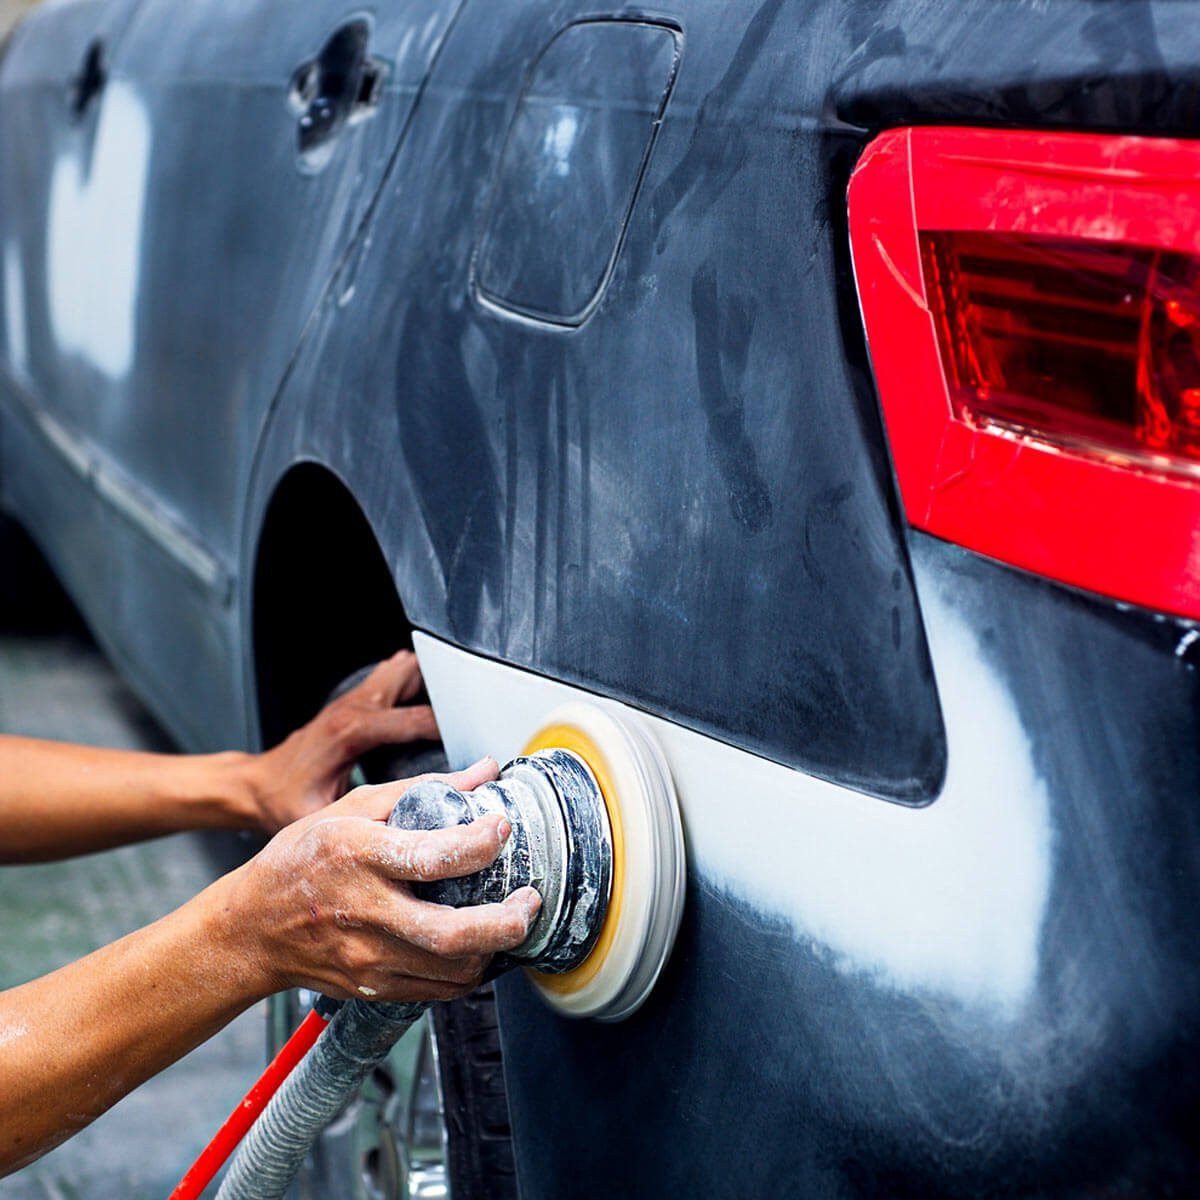 Best ideas about DIY Autobody Repair . Save or Pin 11 Great Tips for DIY Car Body Repair — The Family Handyman Now.